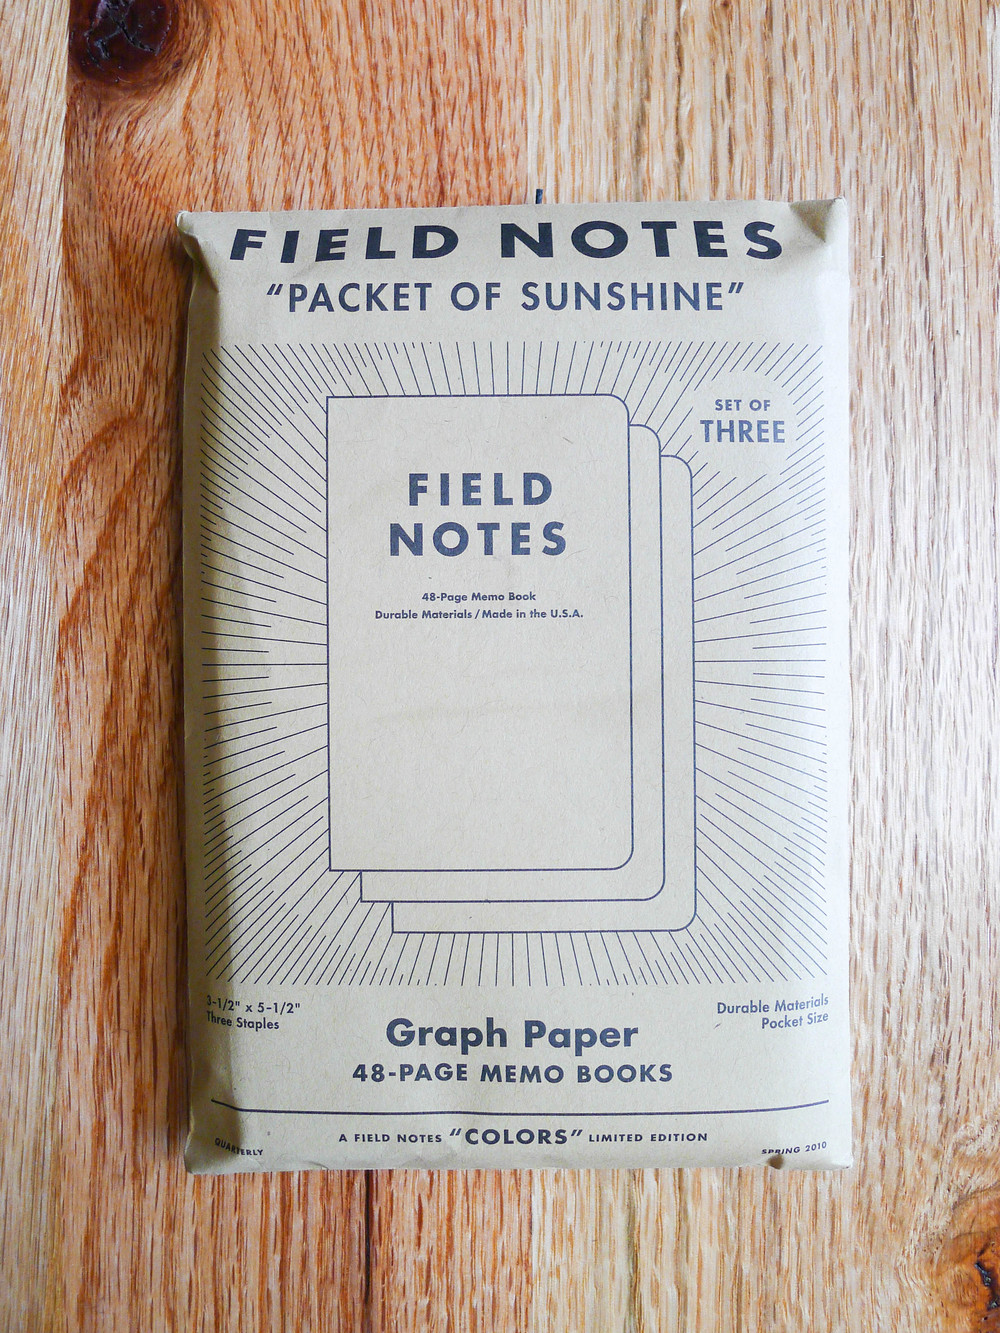 Field Notes Packet of Sunshine - Spring 2010